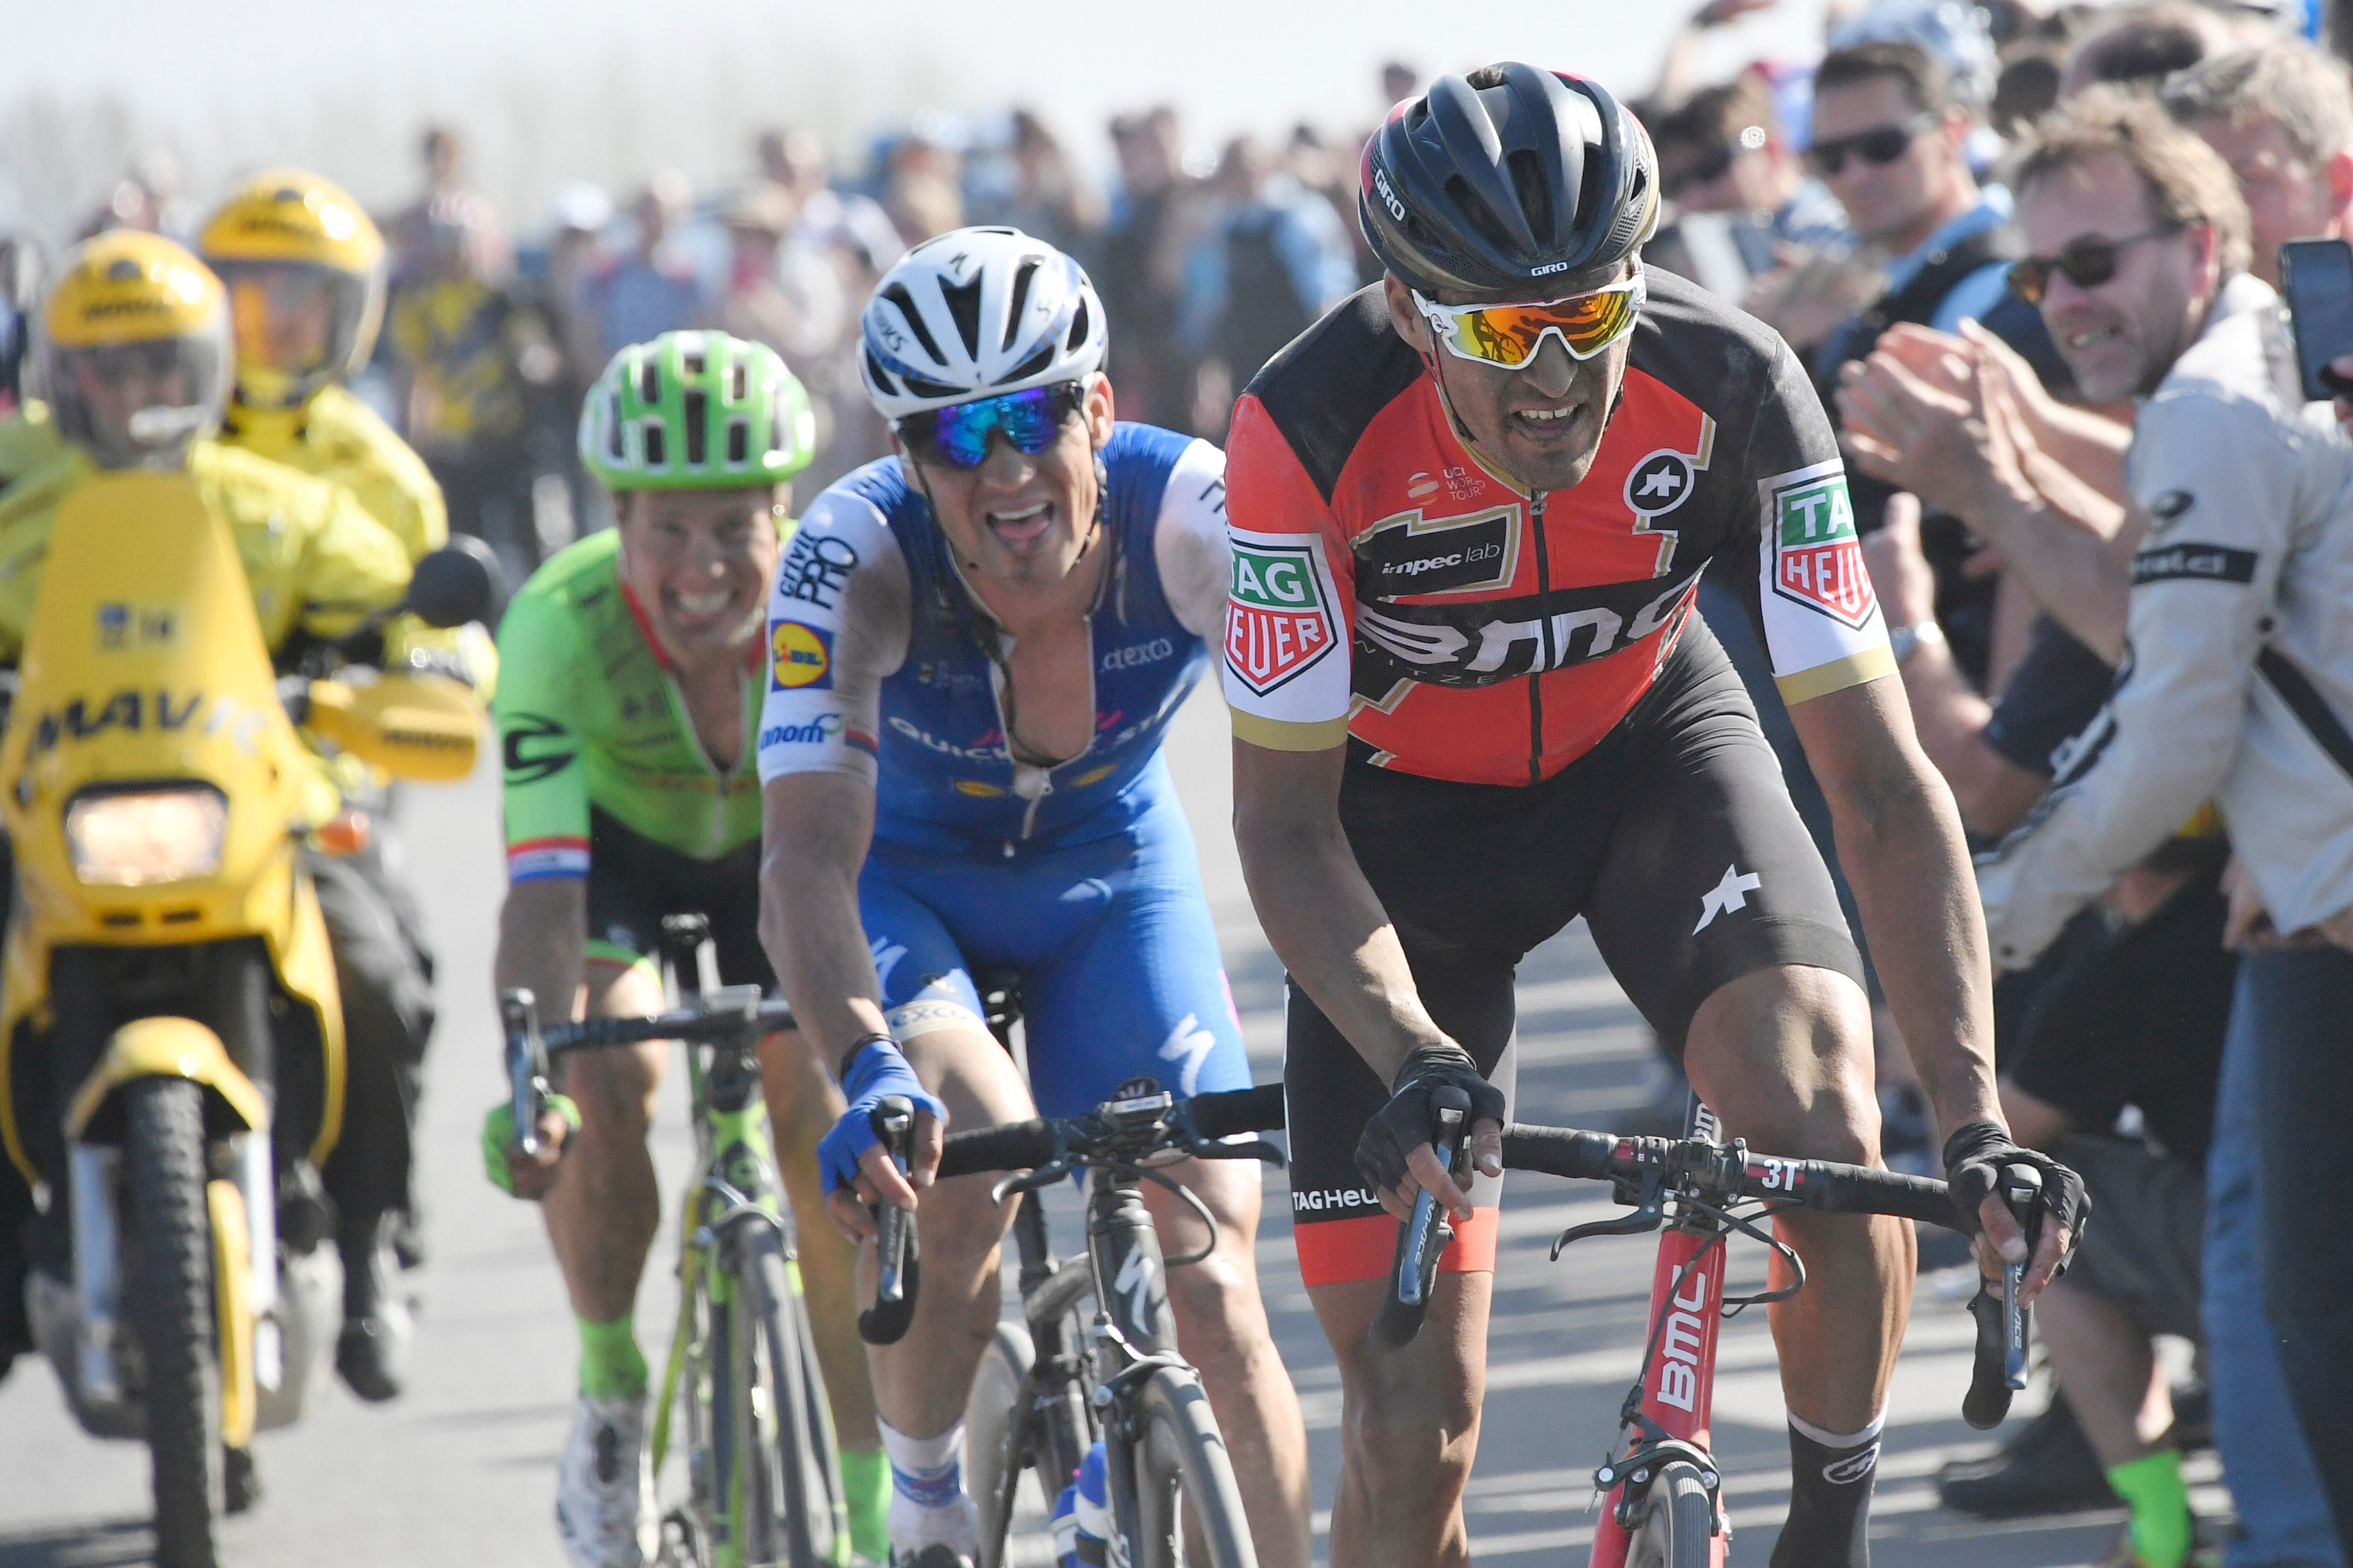 Greg Van Avermaet made the winning attack on the Carrefour de l'Arbre cobbles, followed by Zdenek Stybar and Sebastian Langeveld in the fastest-ever edition of Paris–Roubaix.